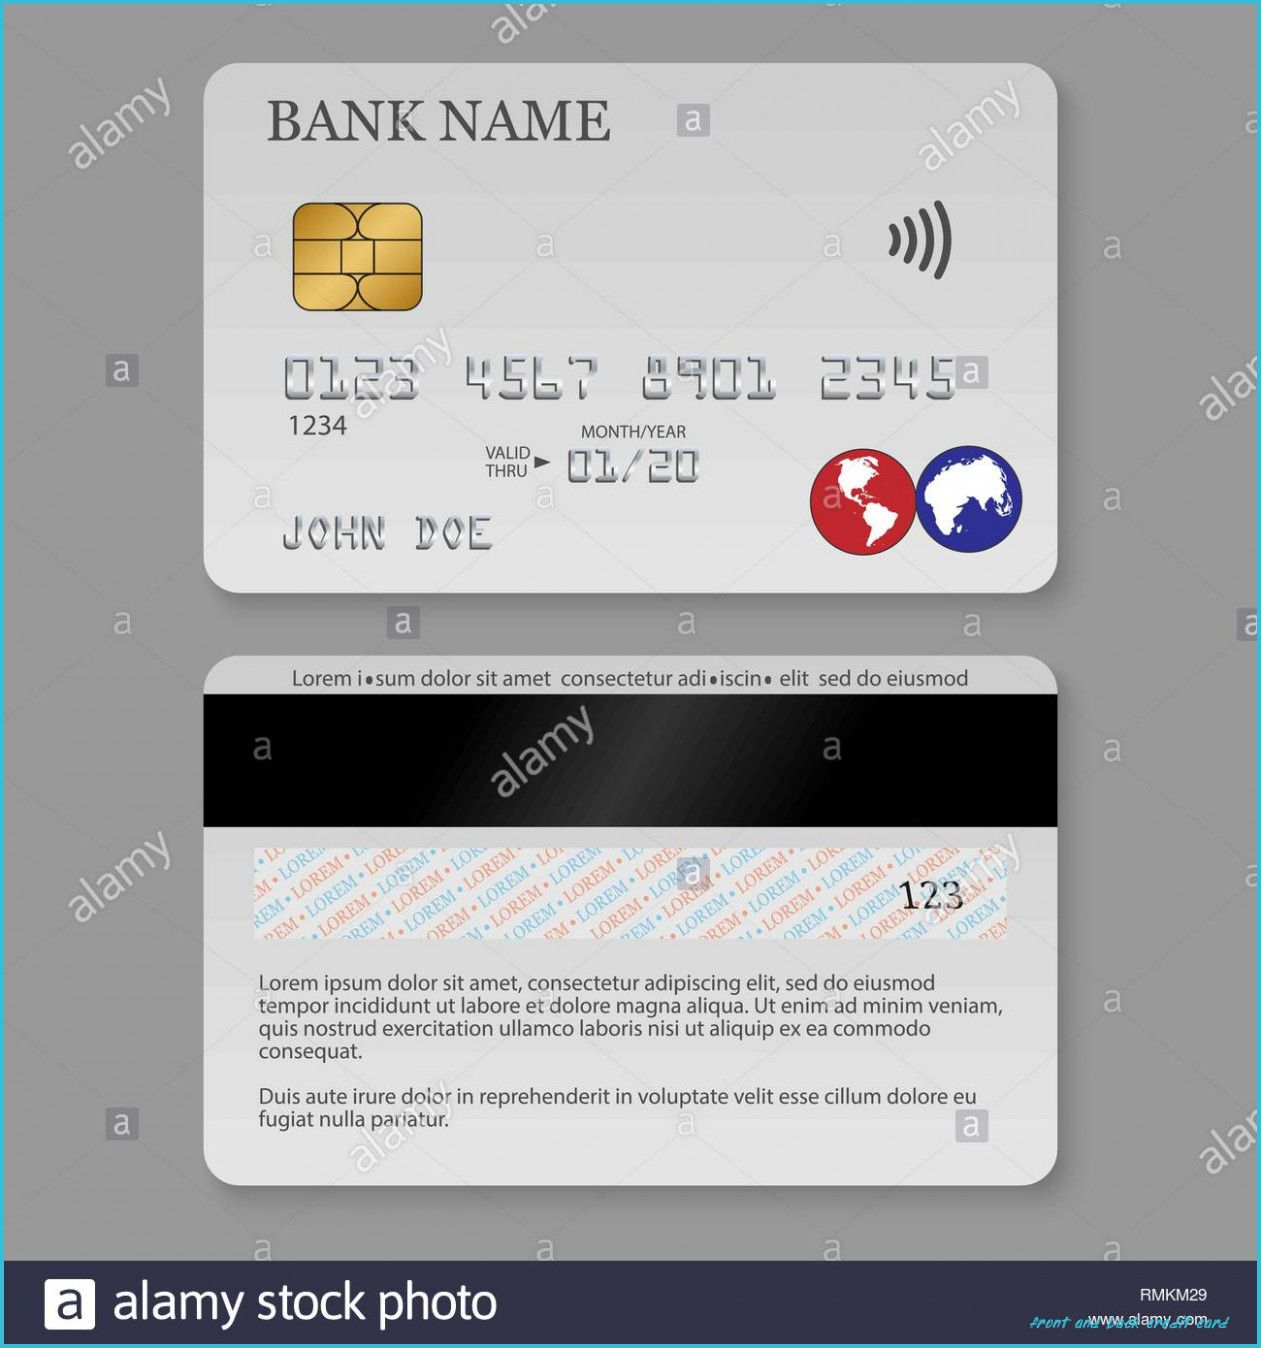 The Miracle Of Front And Back Credit Card Front And Back Credit Card Amazon Credit Card Credit Card Online Free Credit Card